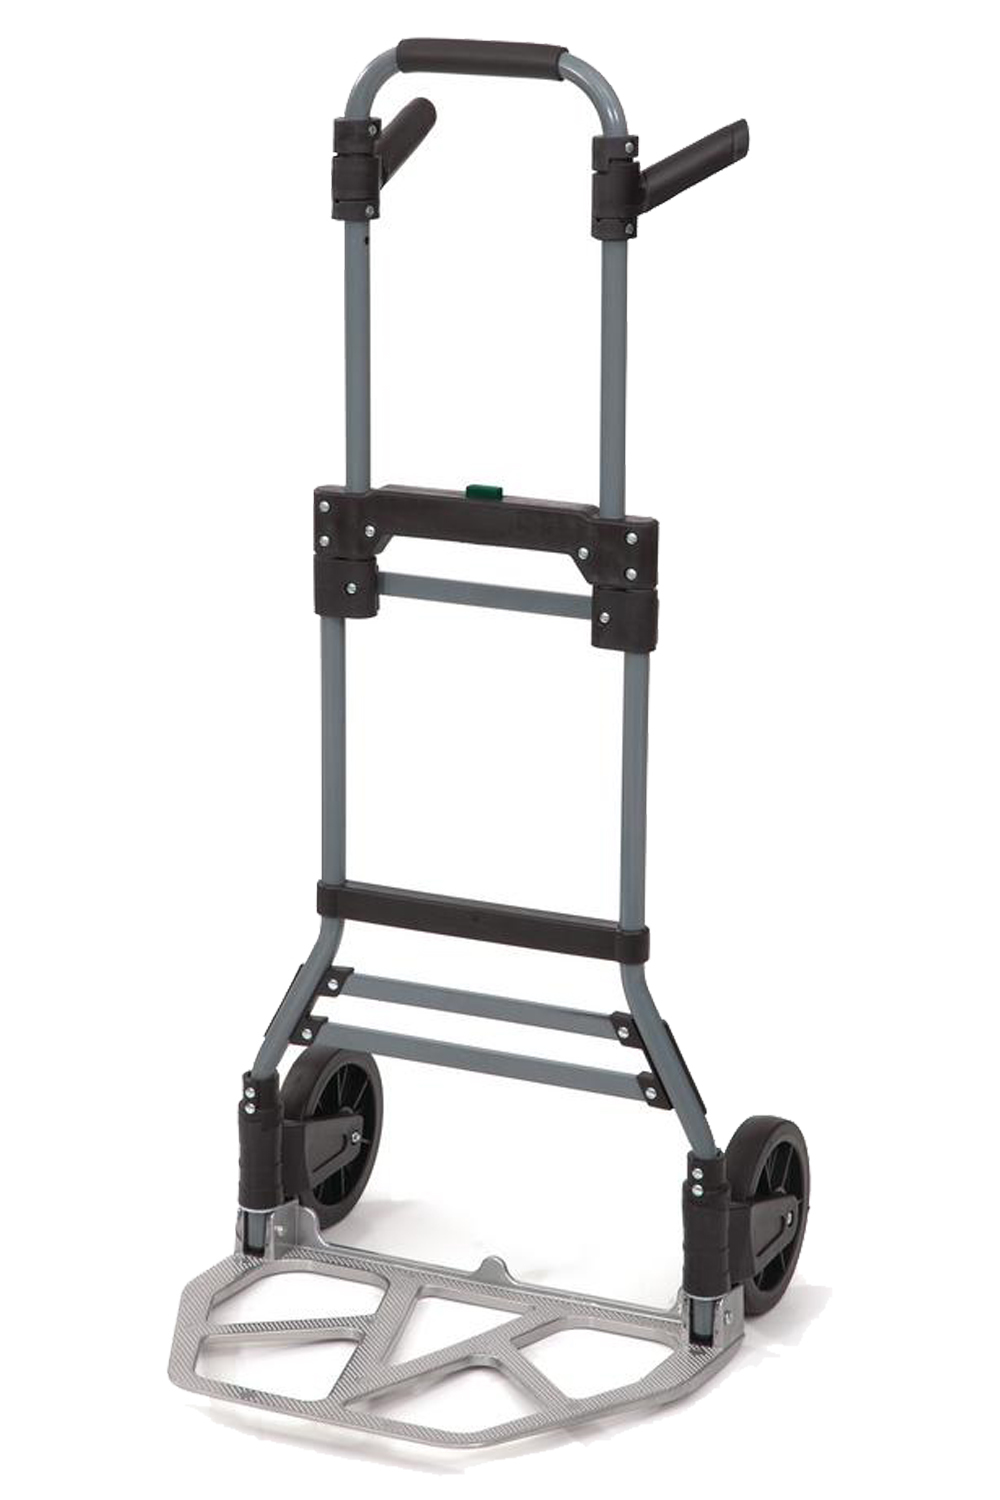 Flo-Fast 60602-K Utility Jug Cart, Telescoping Handle, Folding, Strap Included, Aluminum, Natural, Each